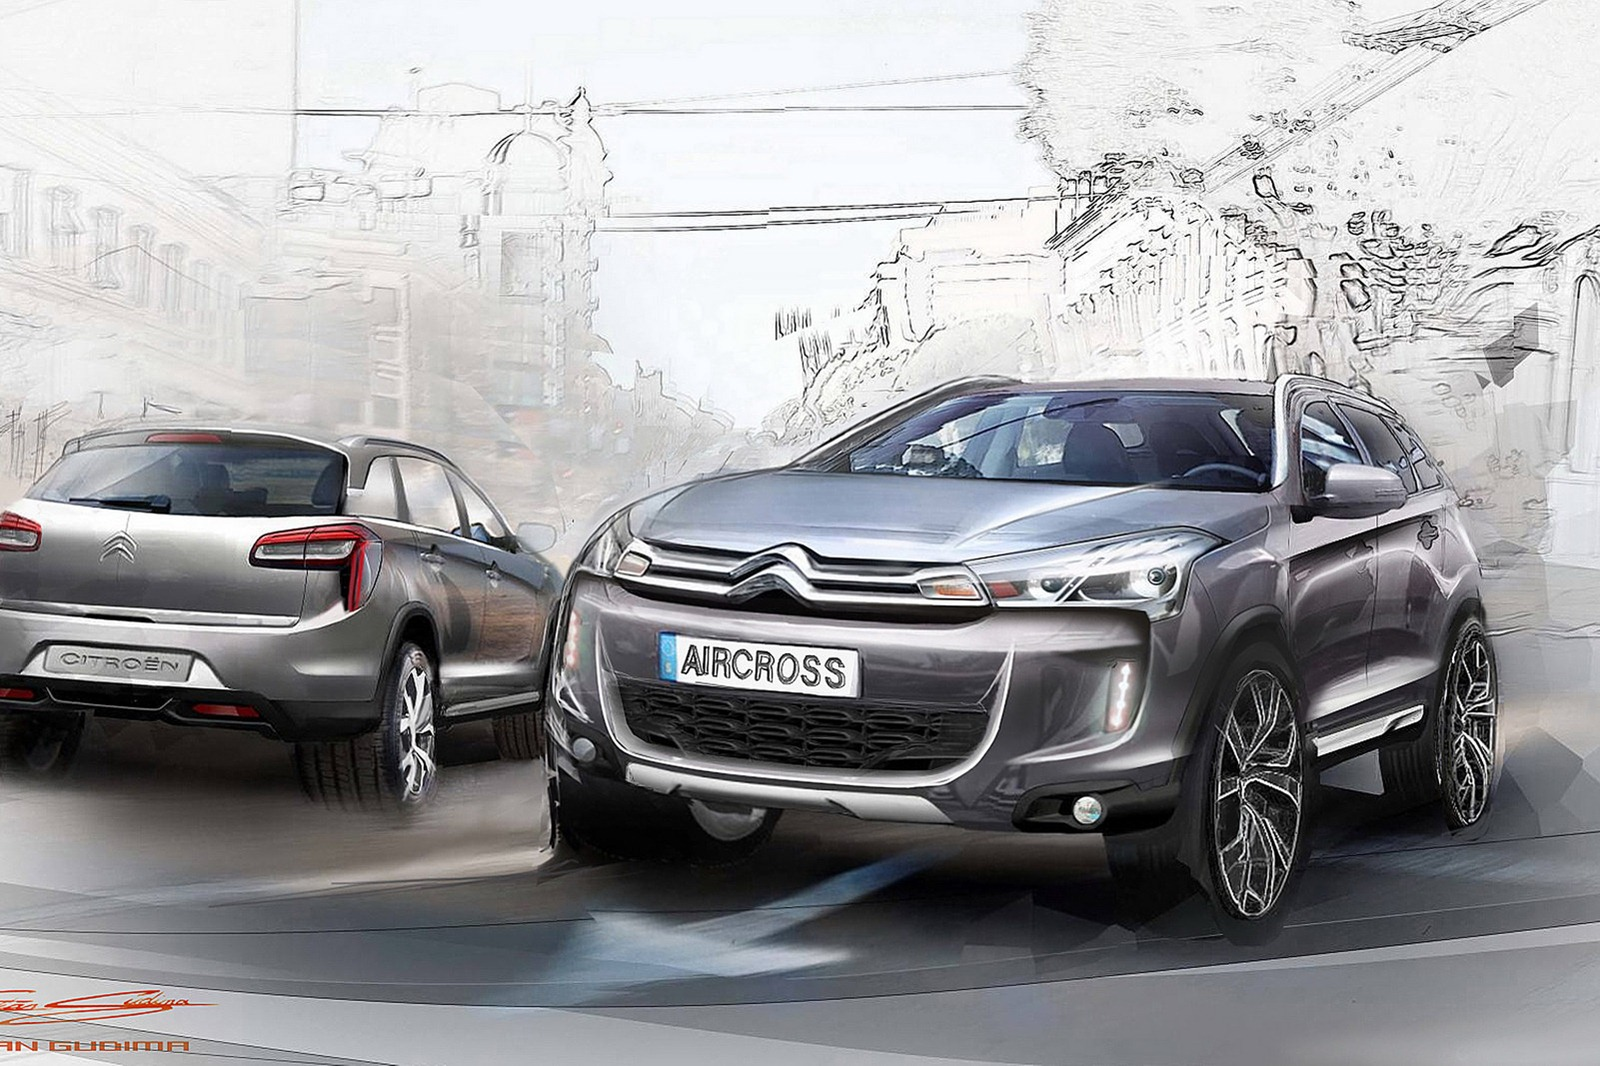 citroen c4 aircross new photos ahead of geneva debut autoevolution. Black Bedroom Furniture Sets. Home Design Ideas